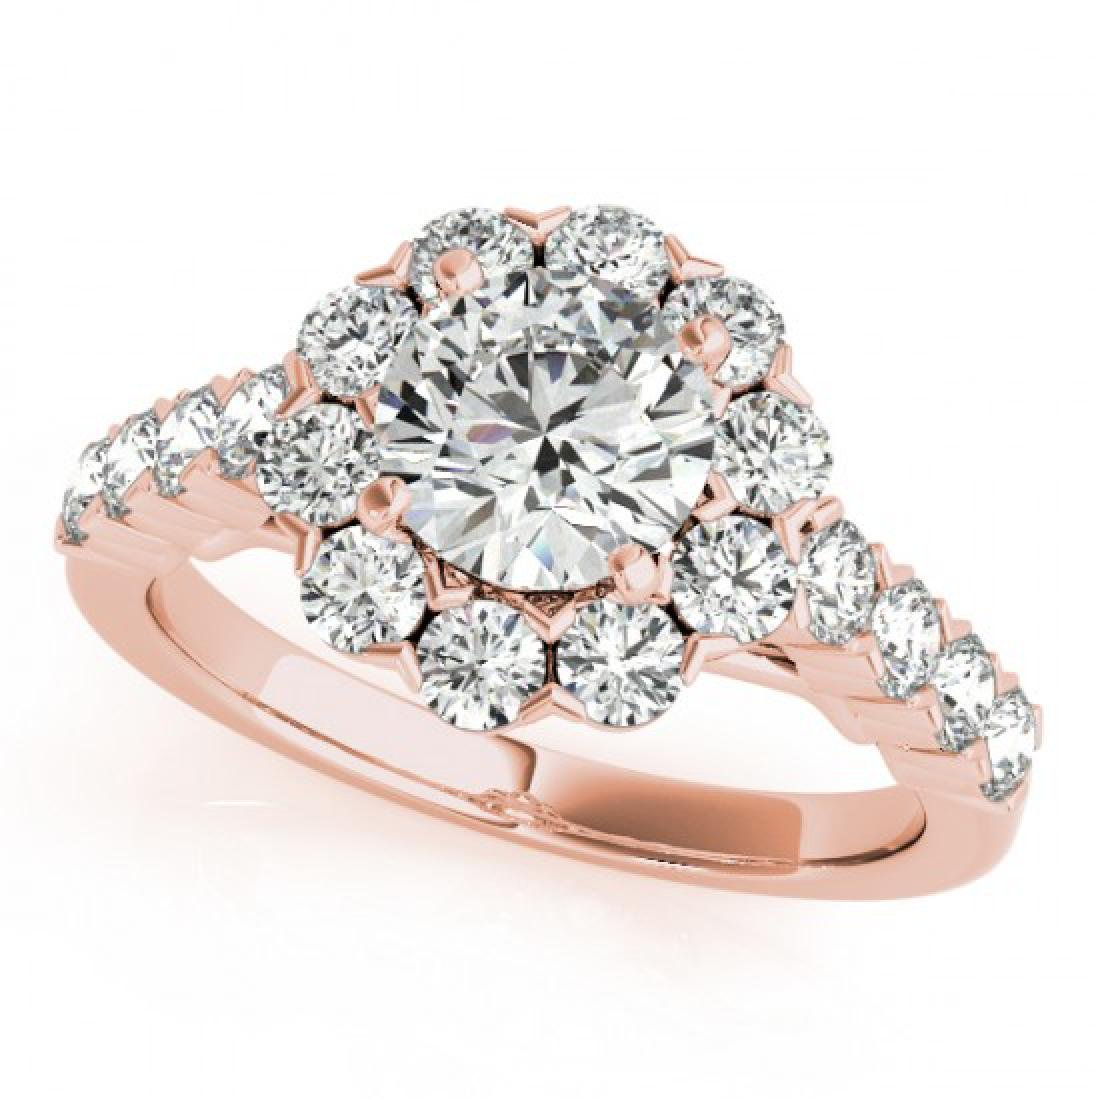 2.35 CTW Certified VS/SI Diamond Solitaire Halo Ring